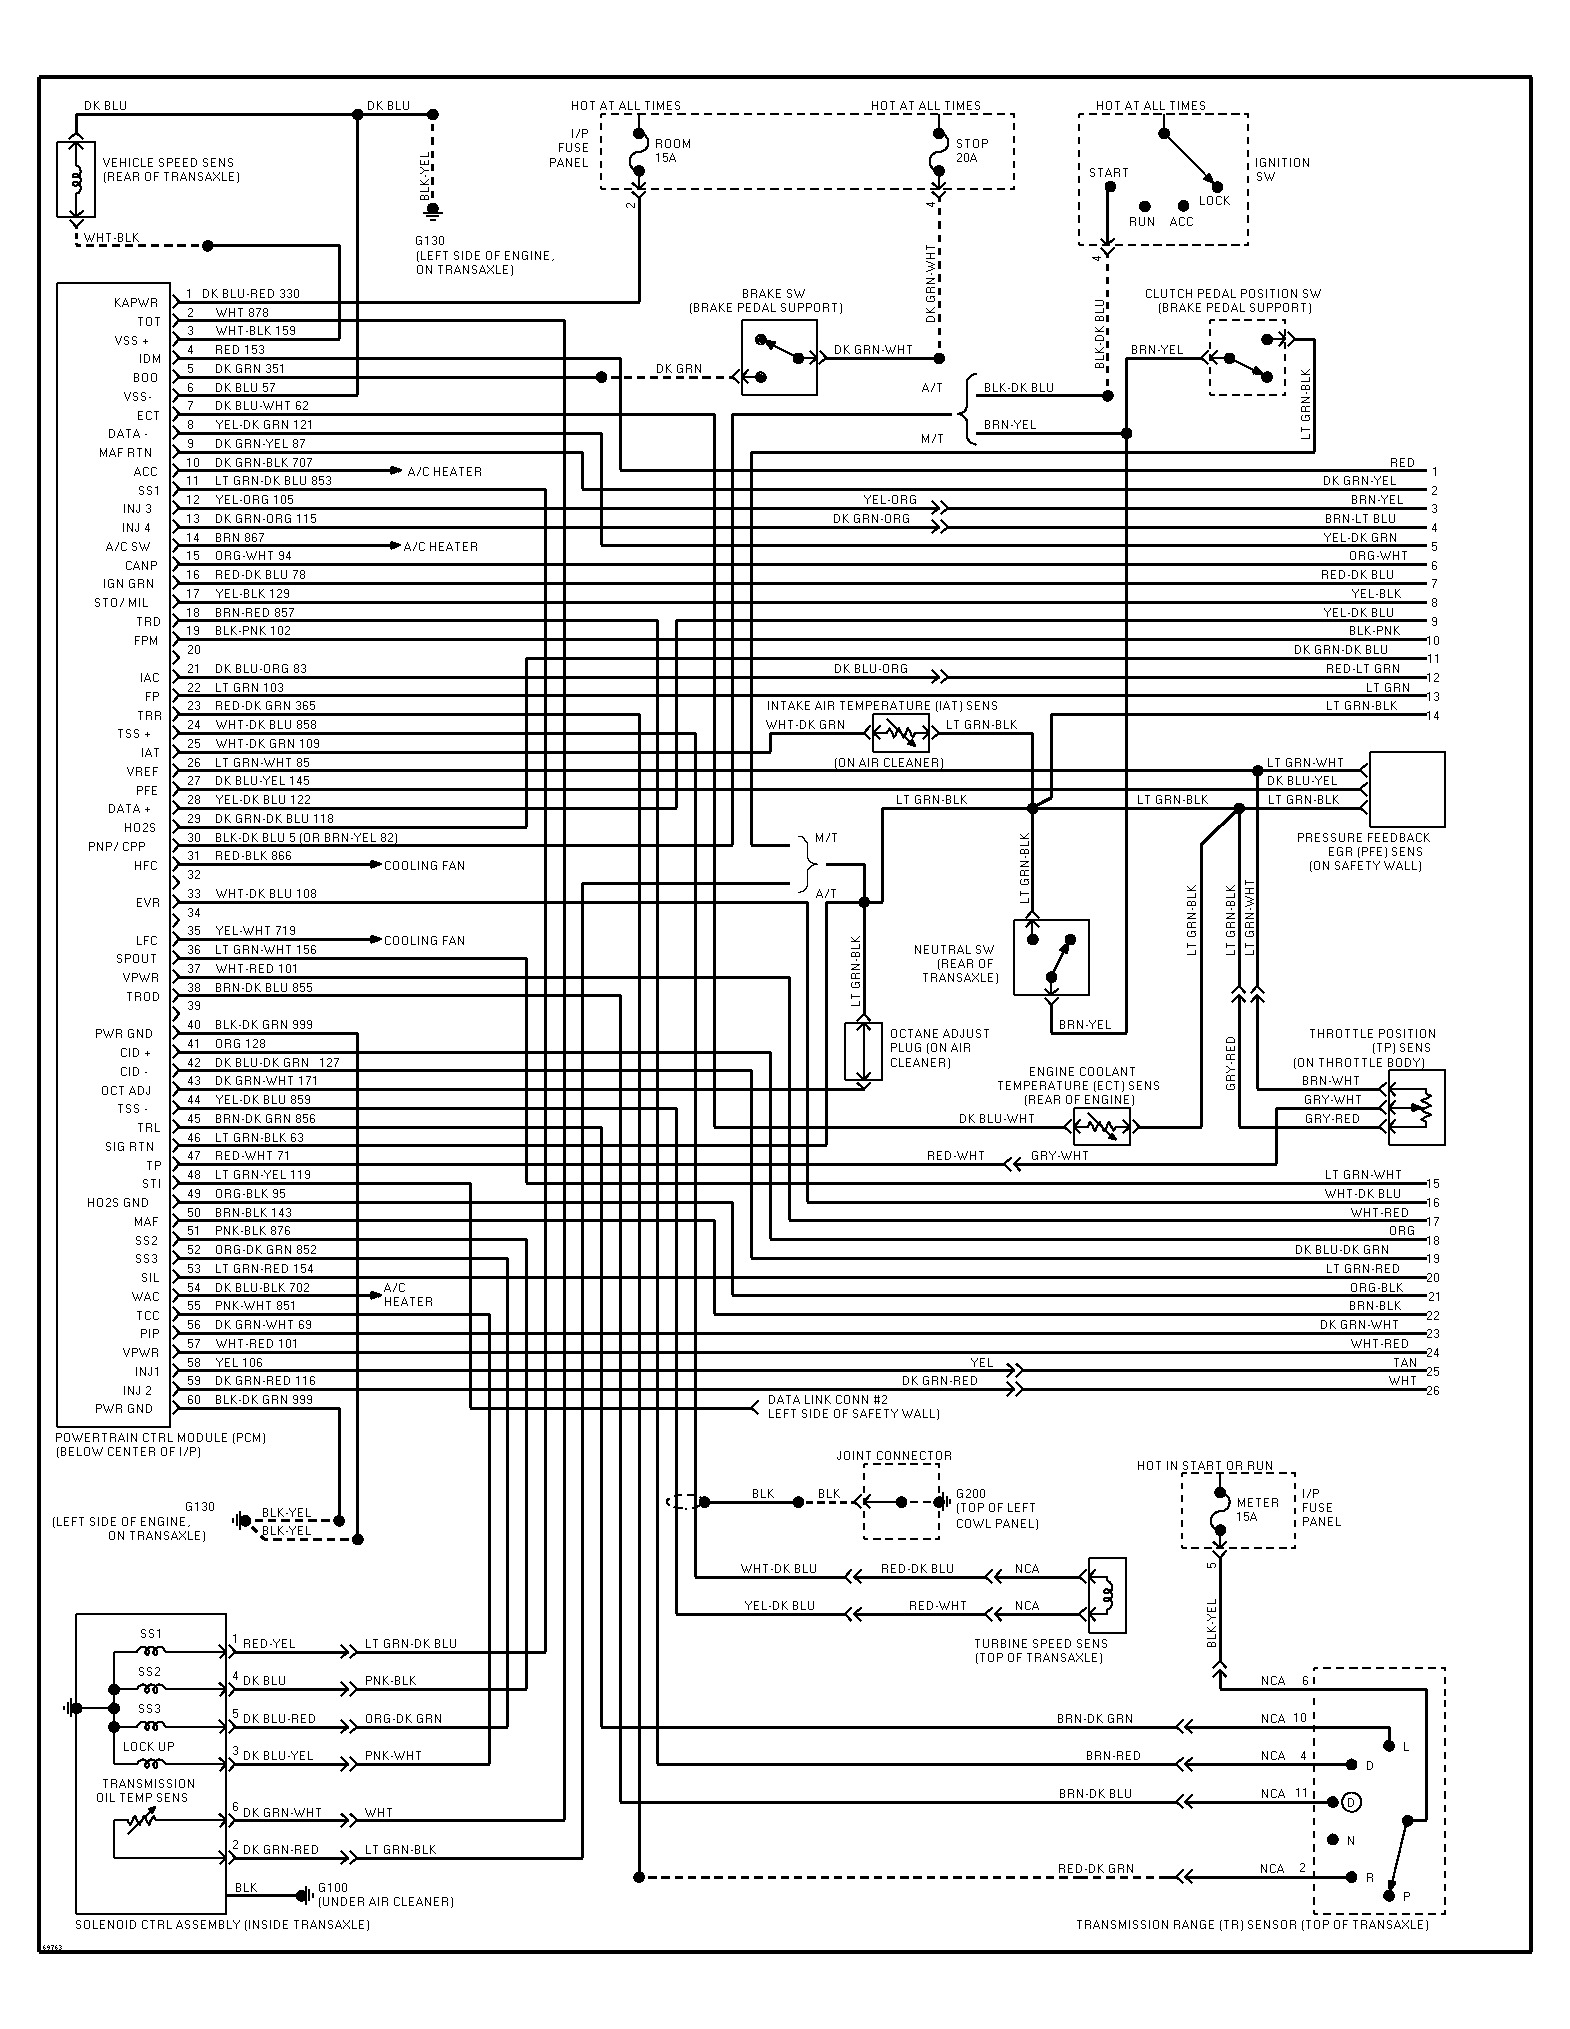 original 1995 ford escort wiring diagram i need to find a color coded ford escort wiring diagram at bakdesigns.co